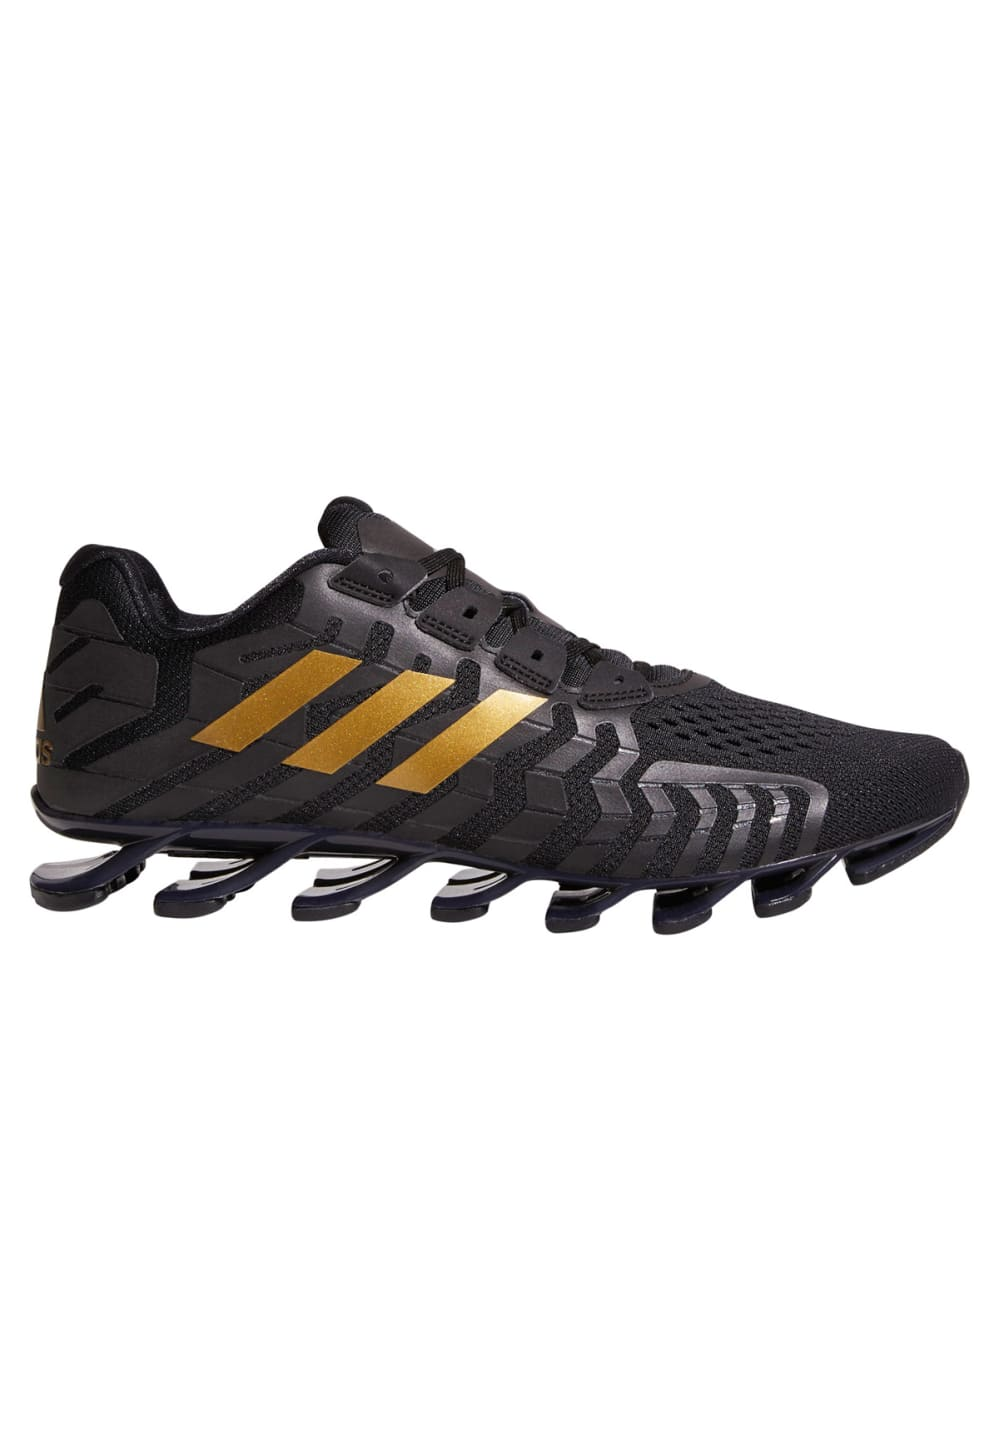 check out 642f7 0cf45 adidas Springblade Pro - Running shoes for Men - Black